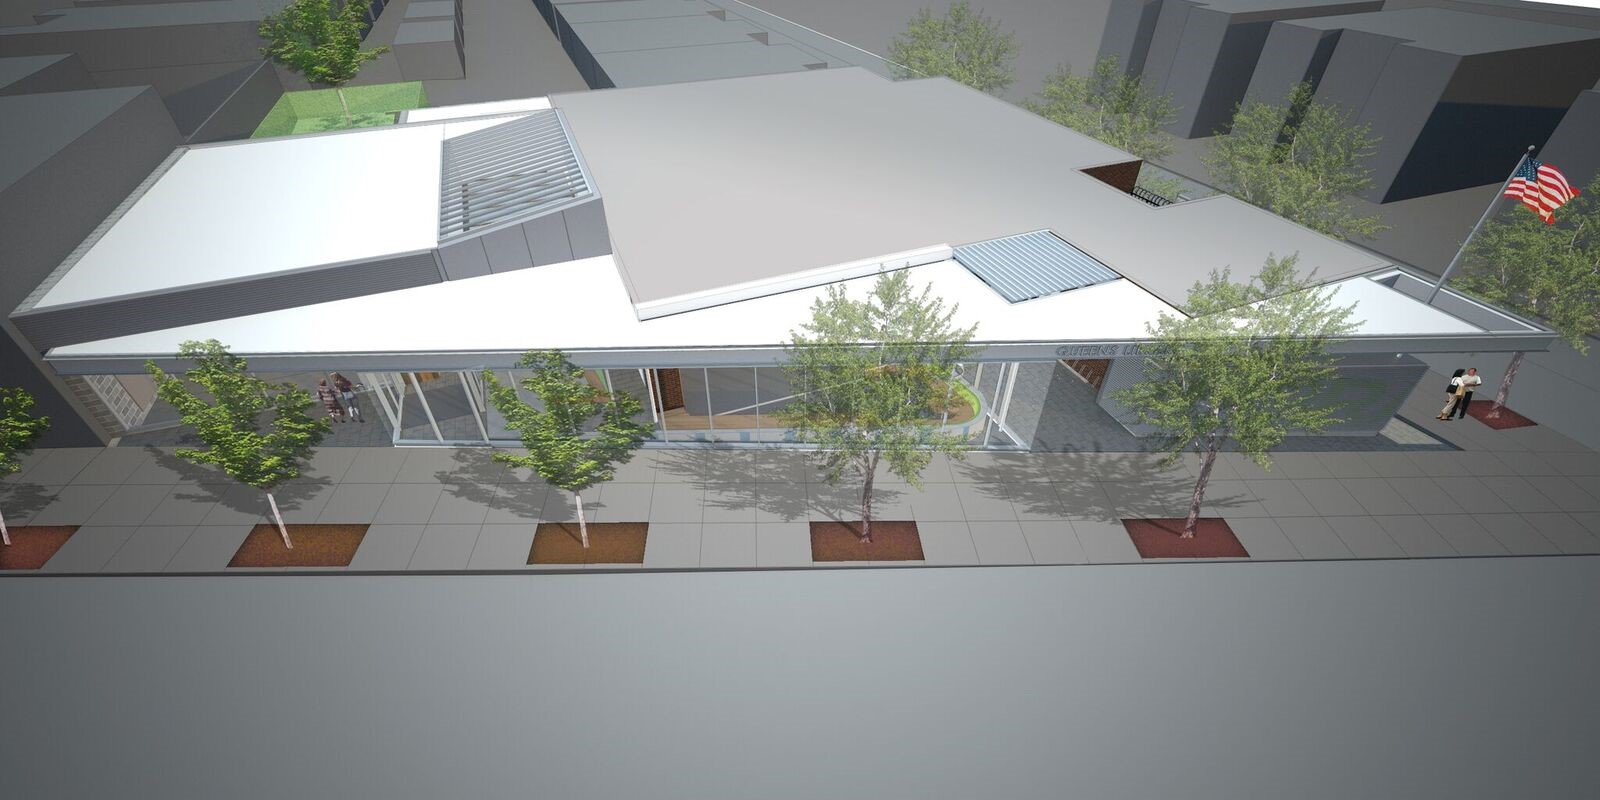 An artist's rendering of the future expanded and renovated East Elmhurst Community Library